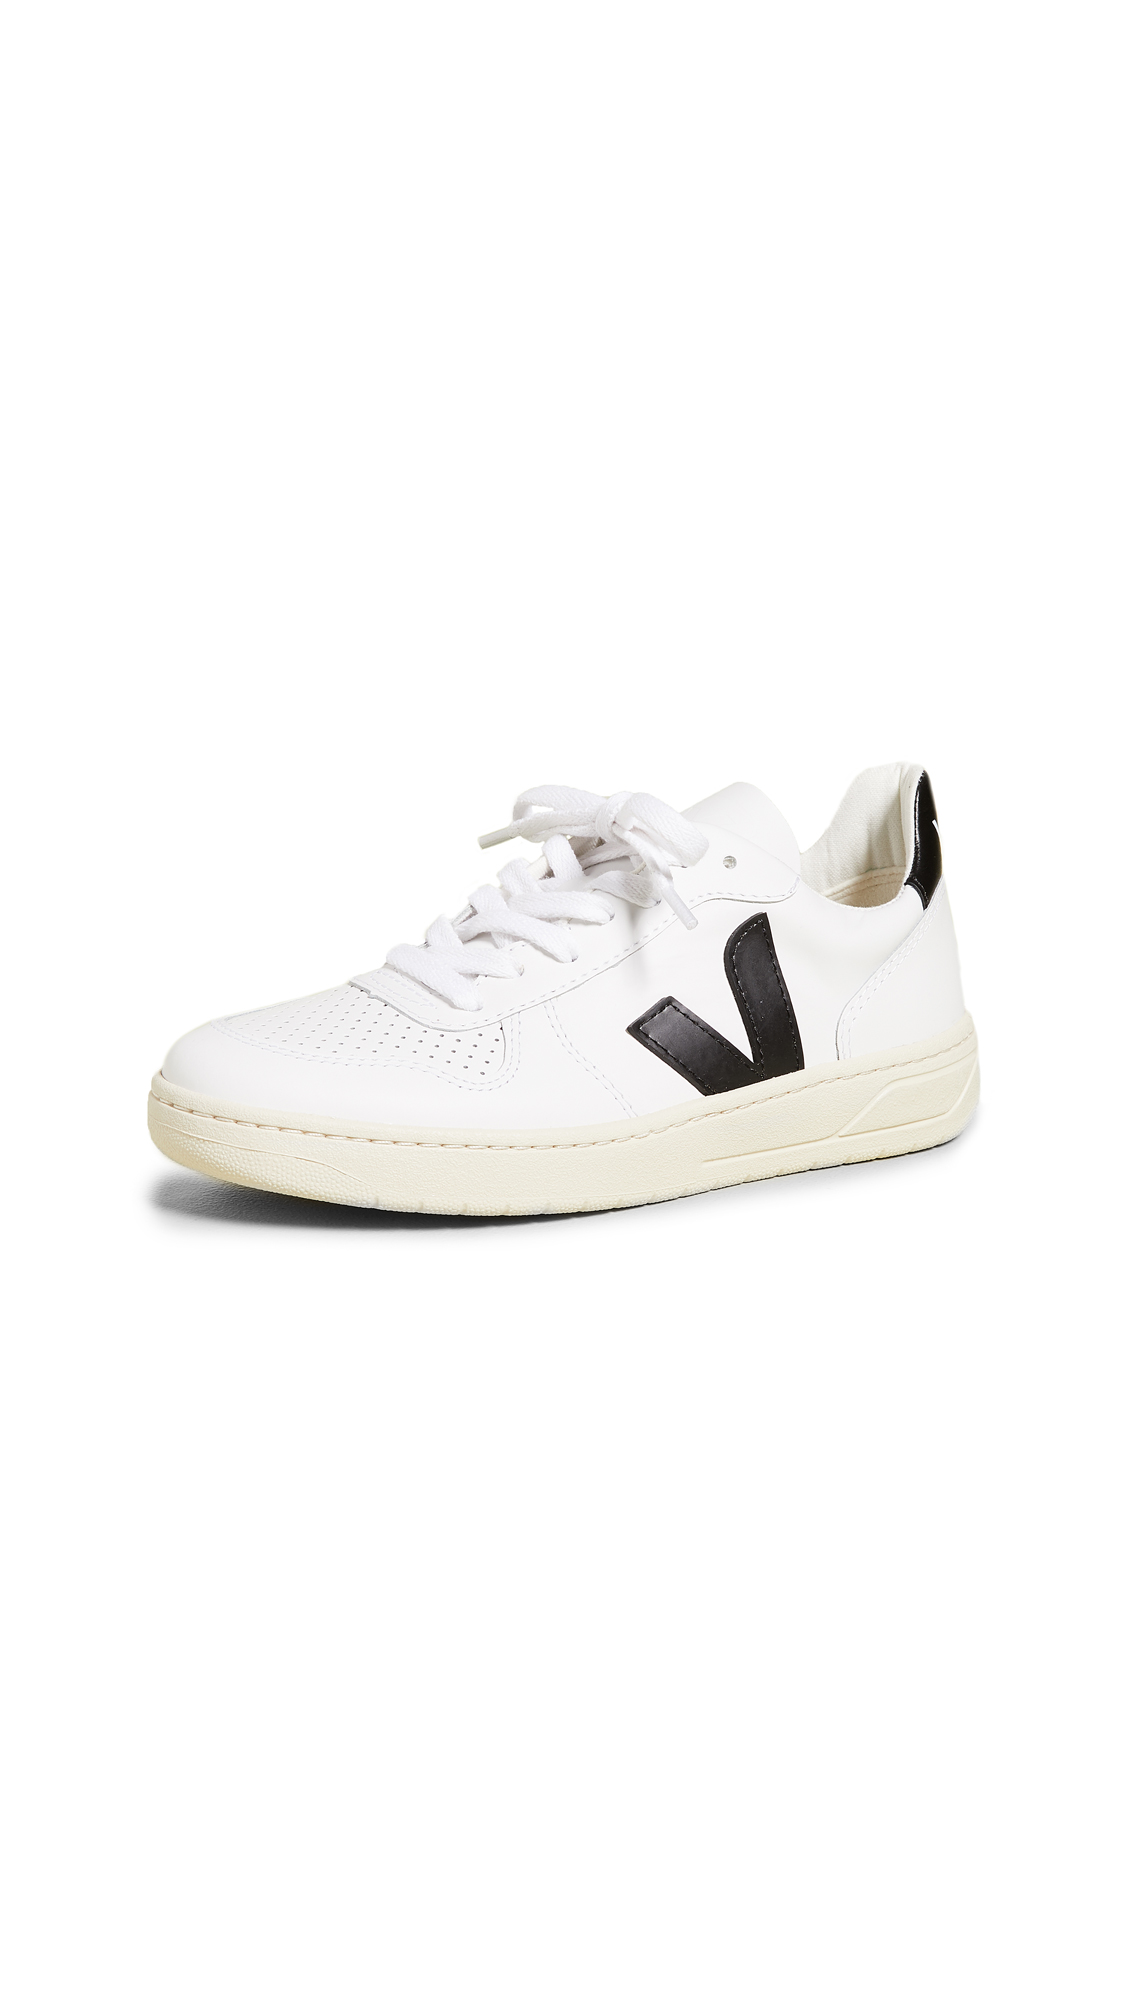 Veja V-10 Lace Up Sneakers - Extra White/Black